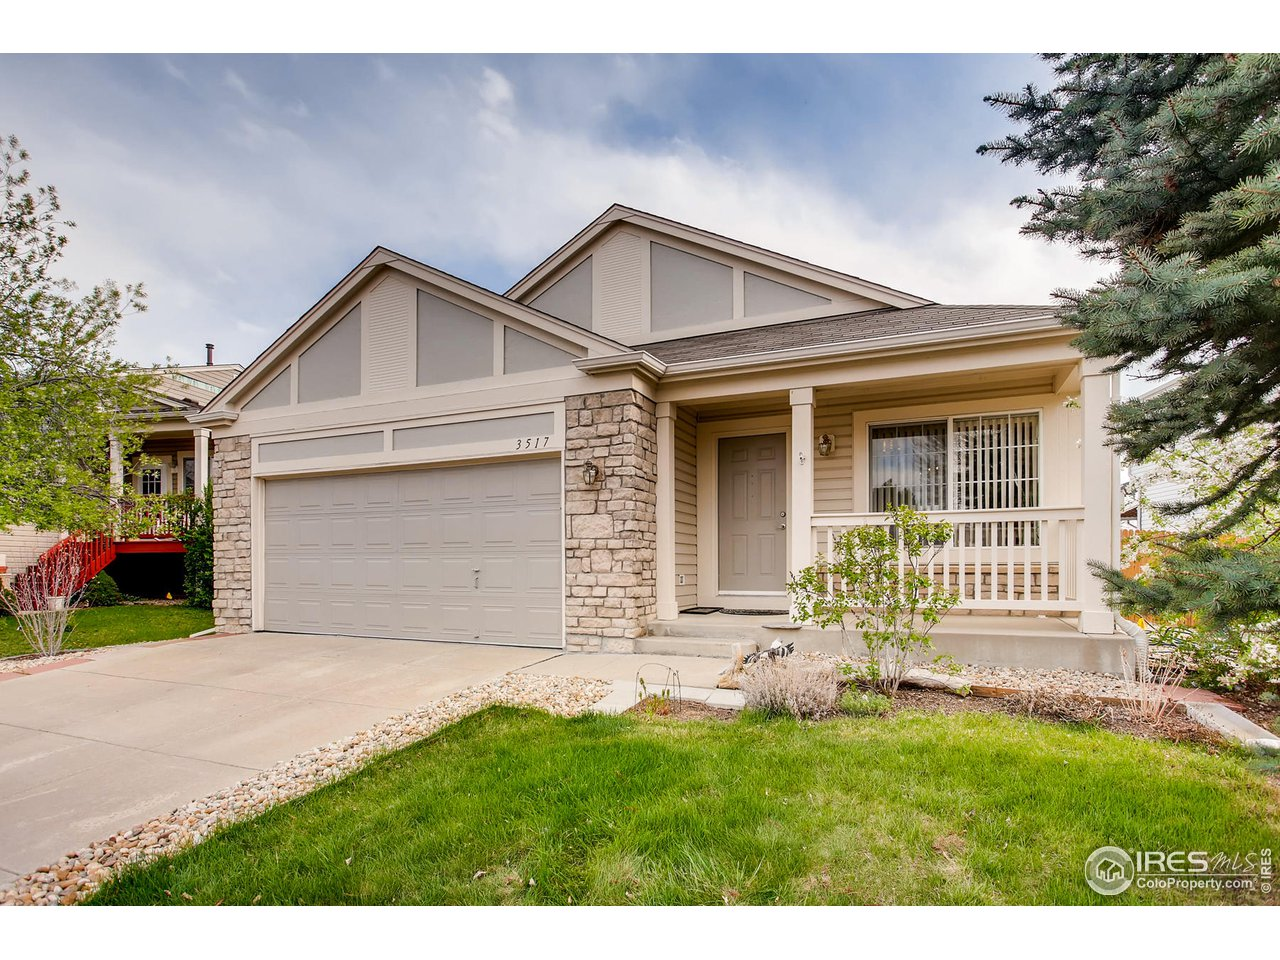 3517 Larkspur Dr, Longmont CO 80503